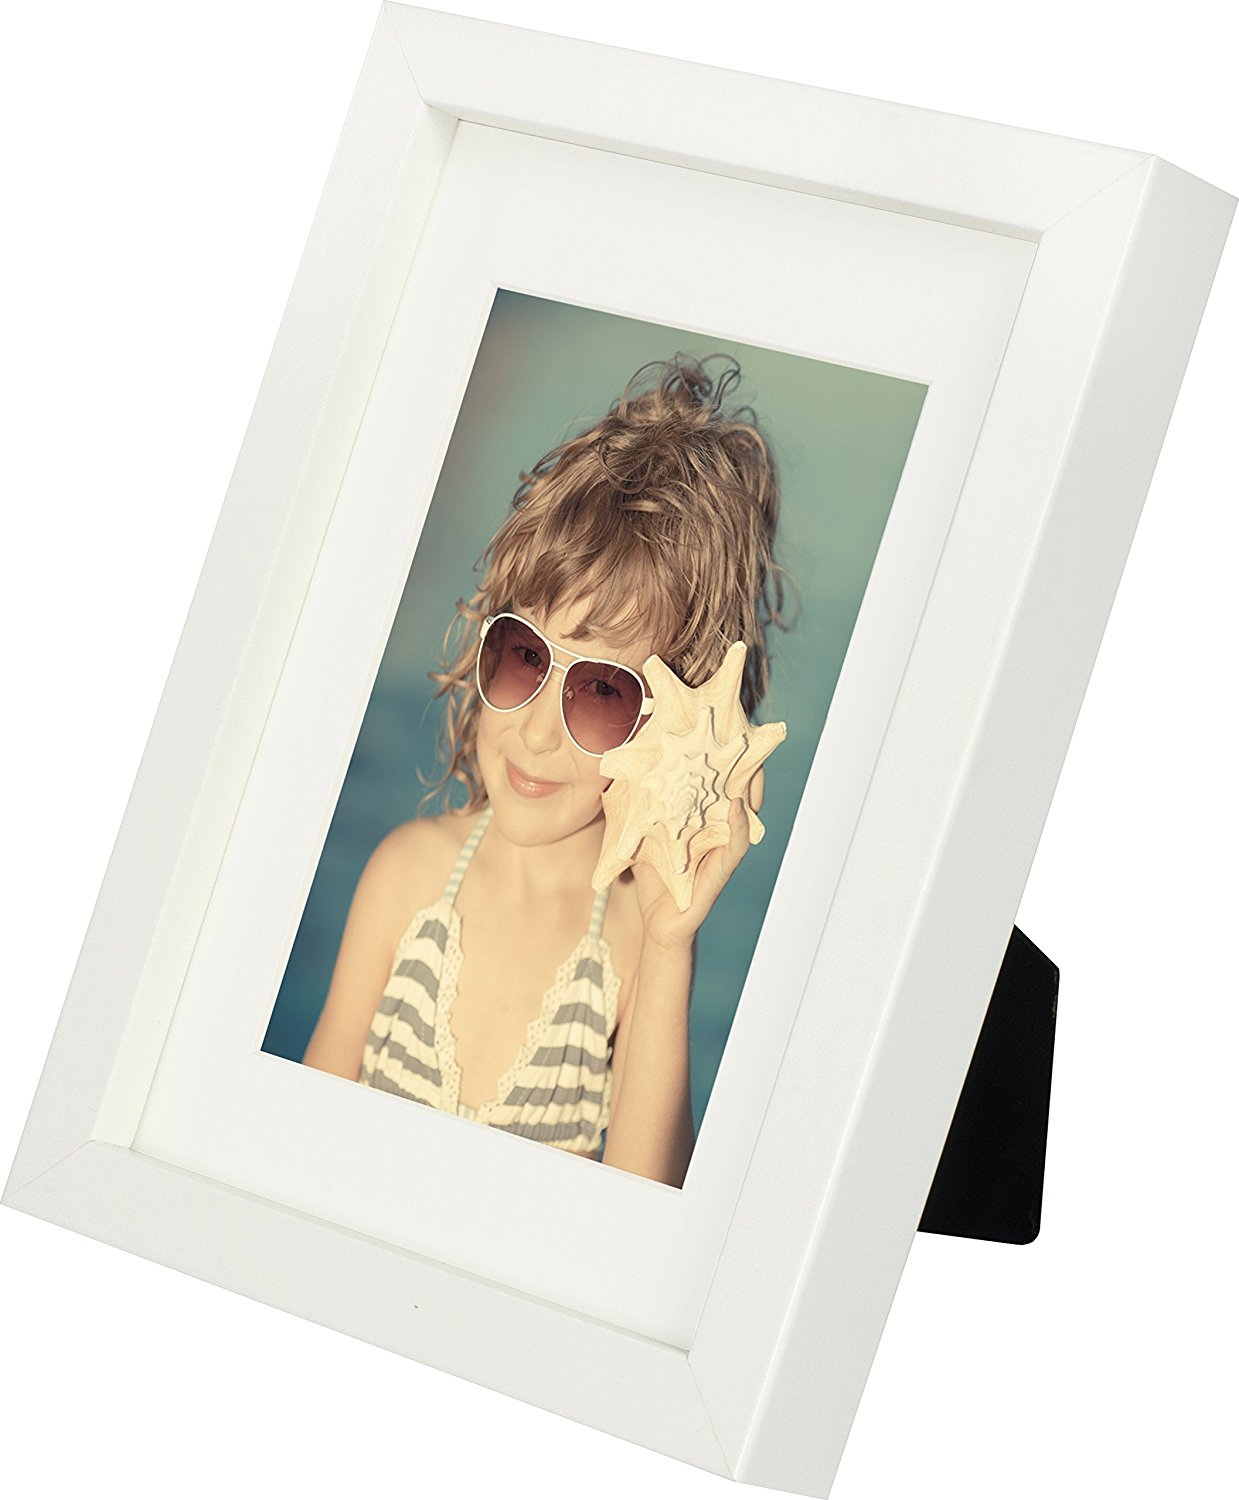 5 x 7-Inch Picture Photo Frame with mount for 4 x 6-Inch photo, 2 Pack, WHITE